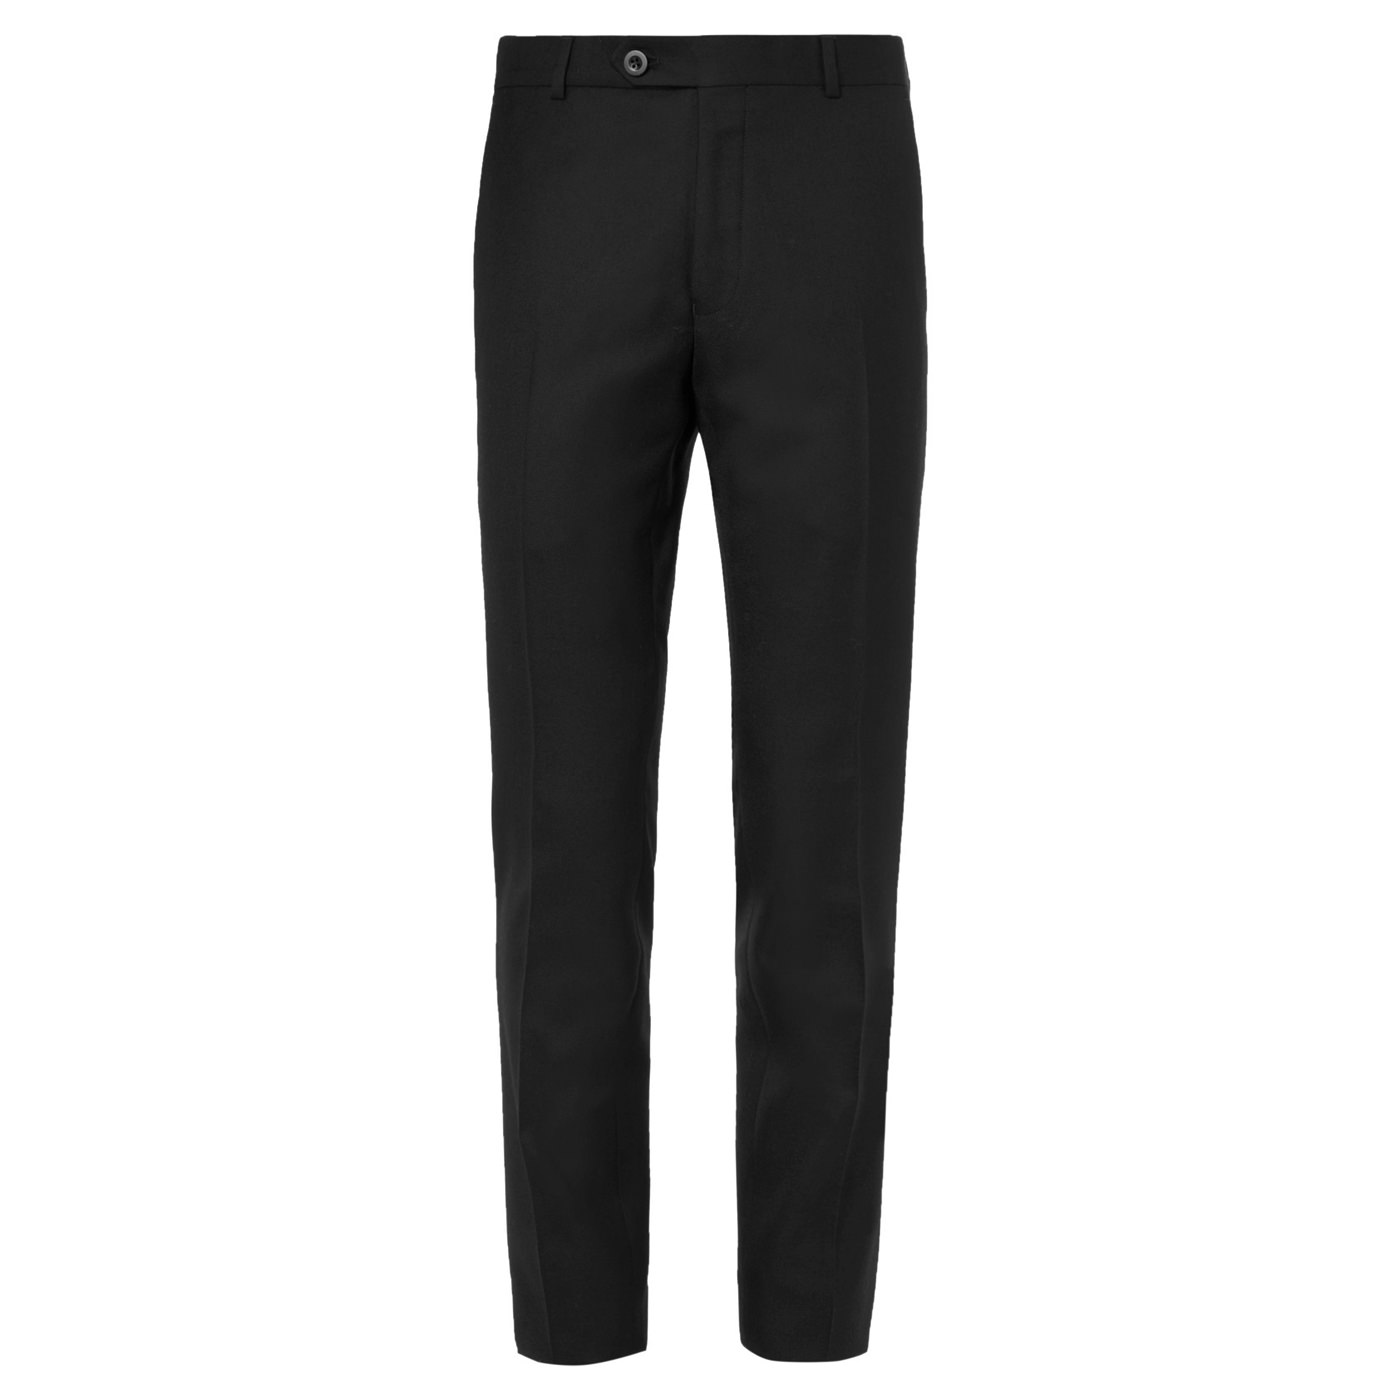 Style Mr Porter Pantalon Mr P. Noir Slim Fit